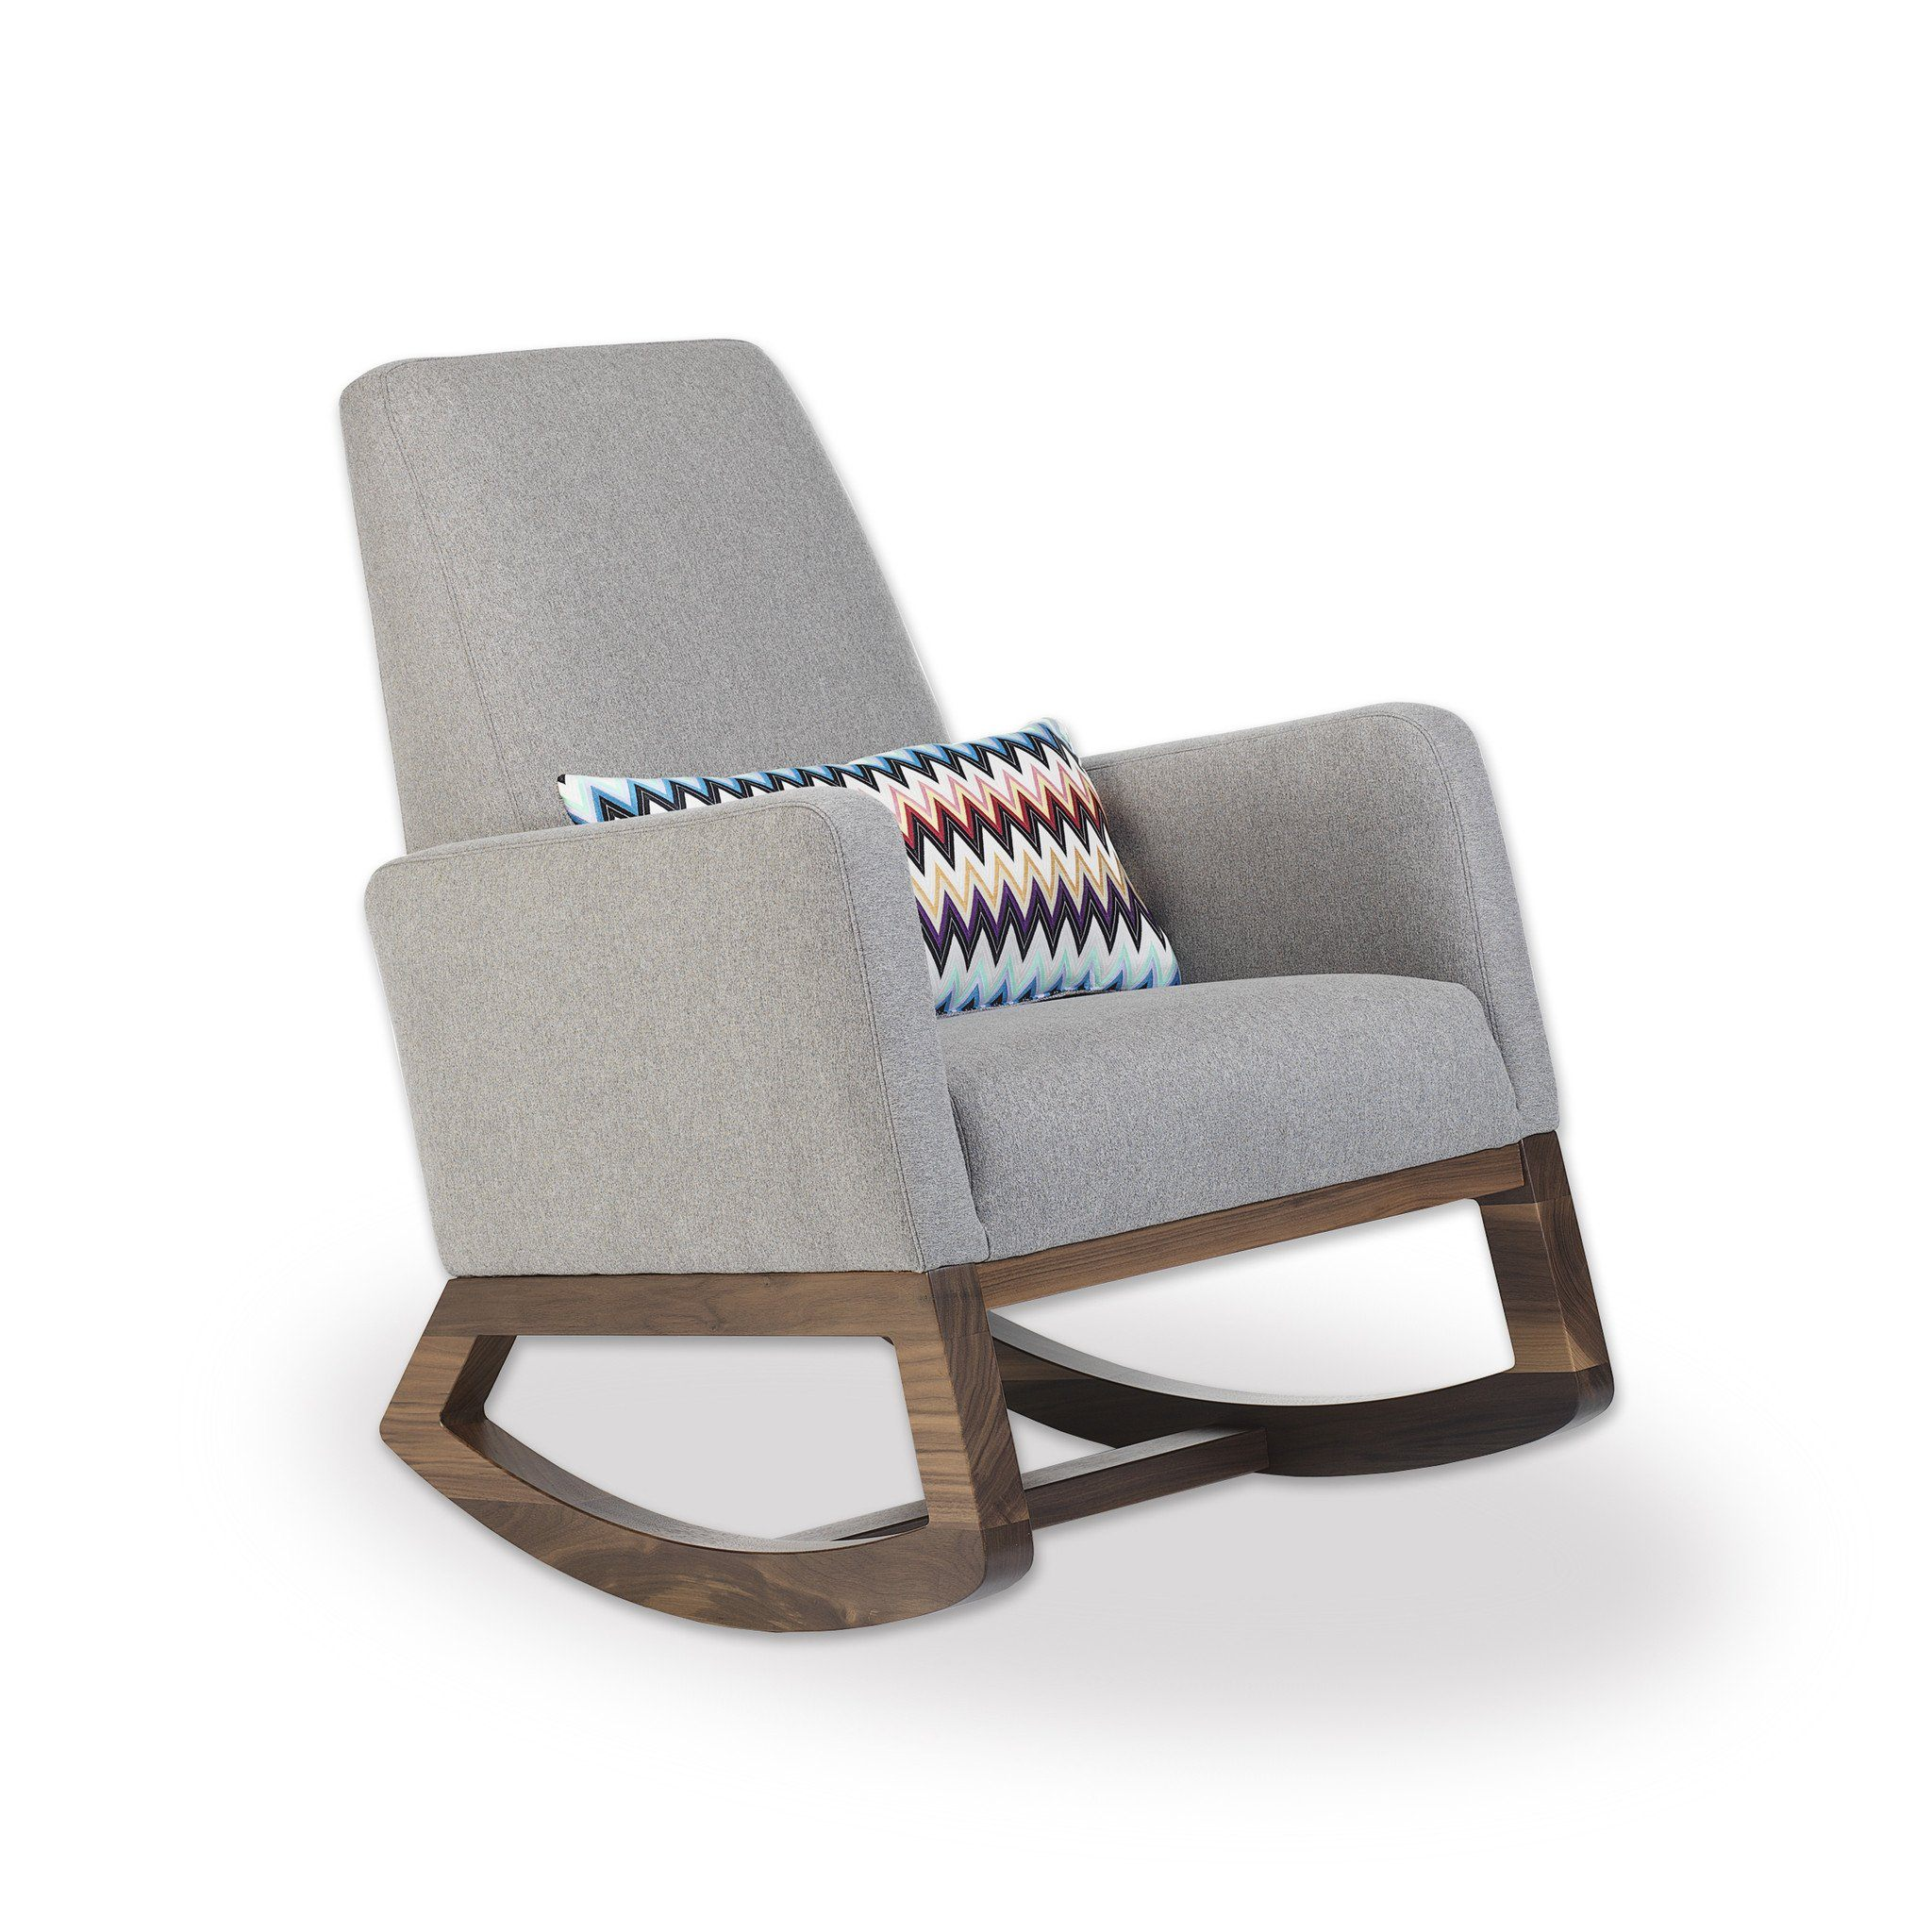 Missoni Home Rocking Chair: Project Nursery